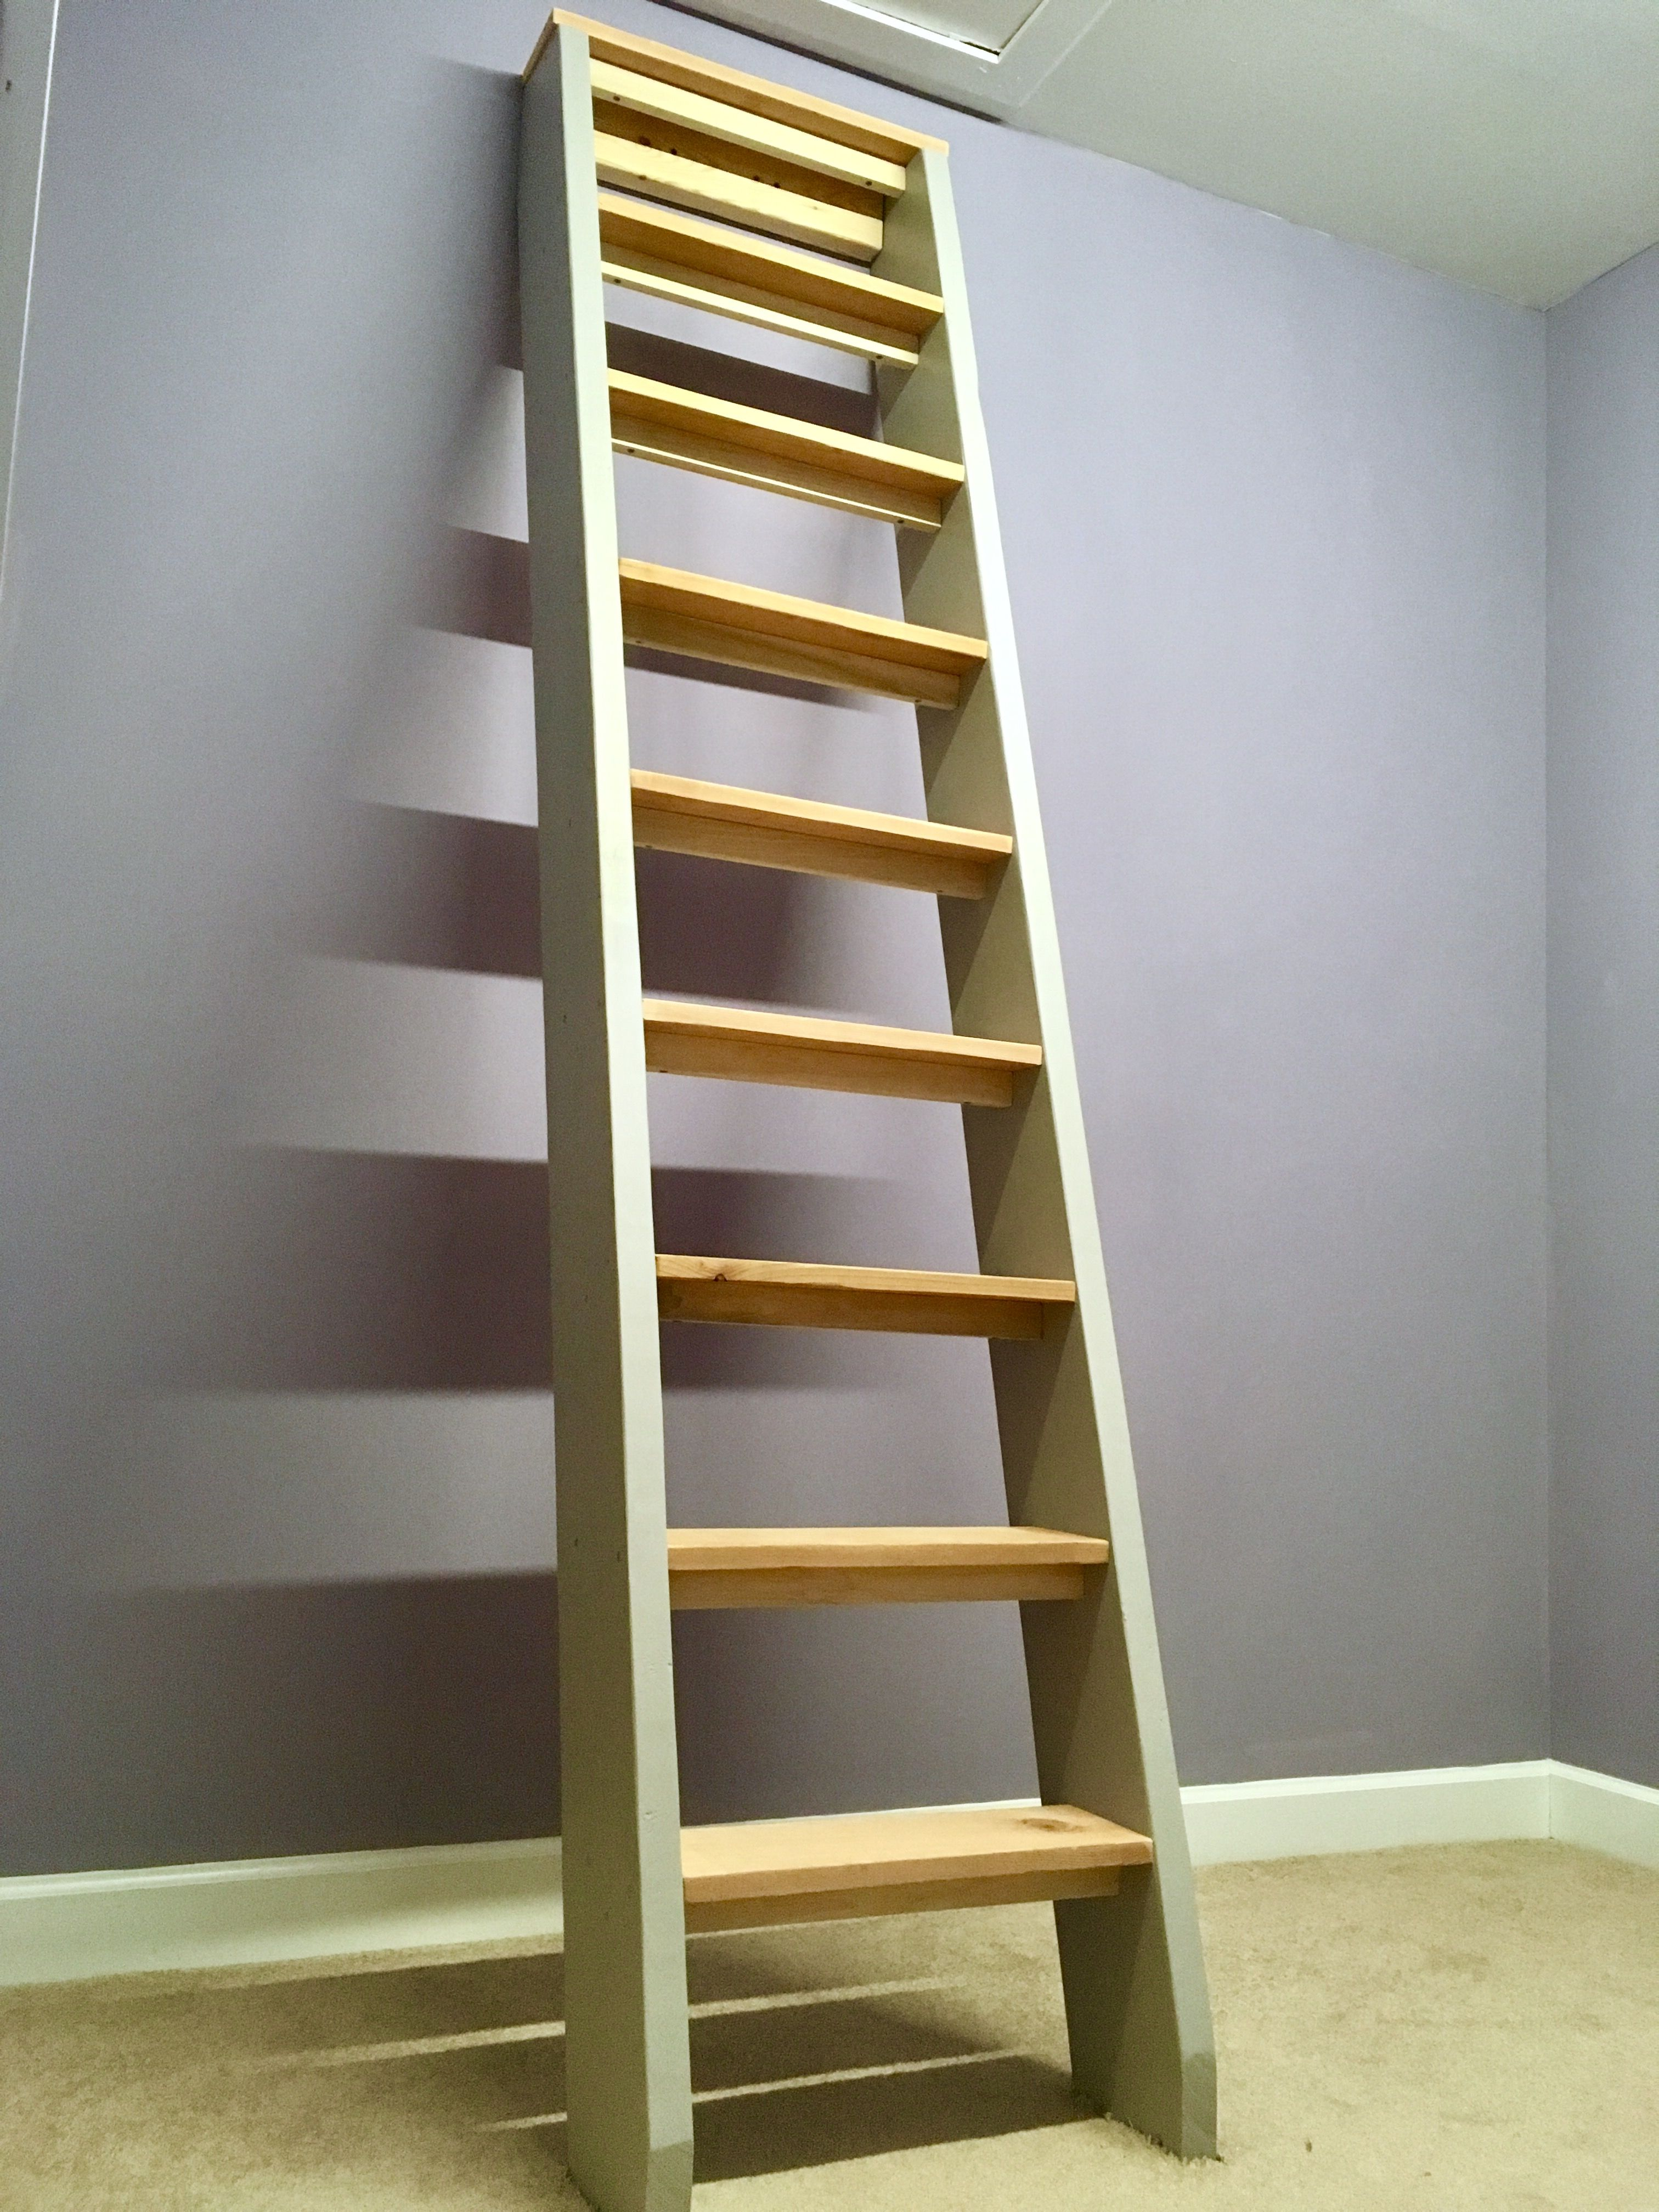 Permanent Ladder To The Attic Access. Cedar, Poplar And Pine. Anchored At  Top